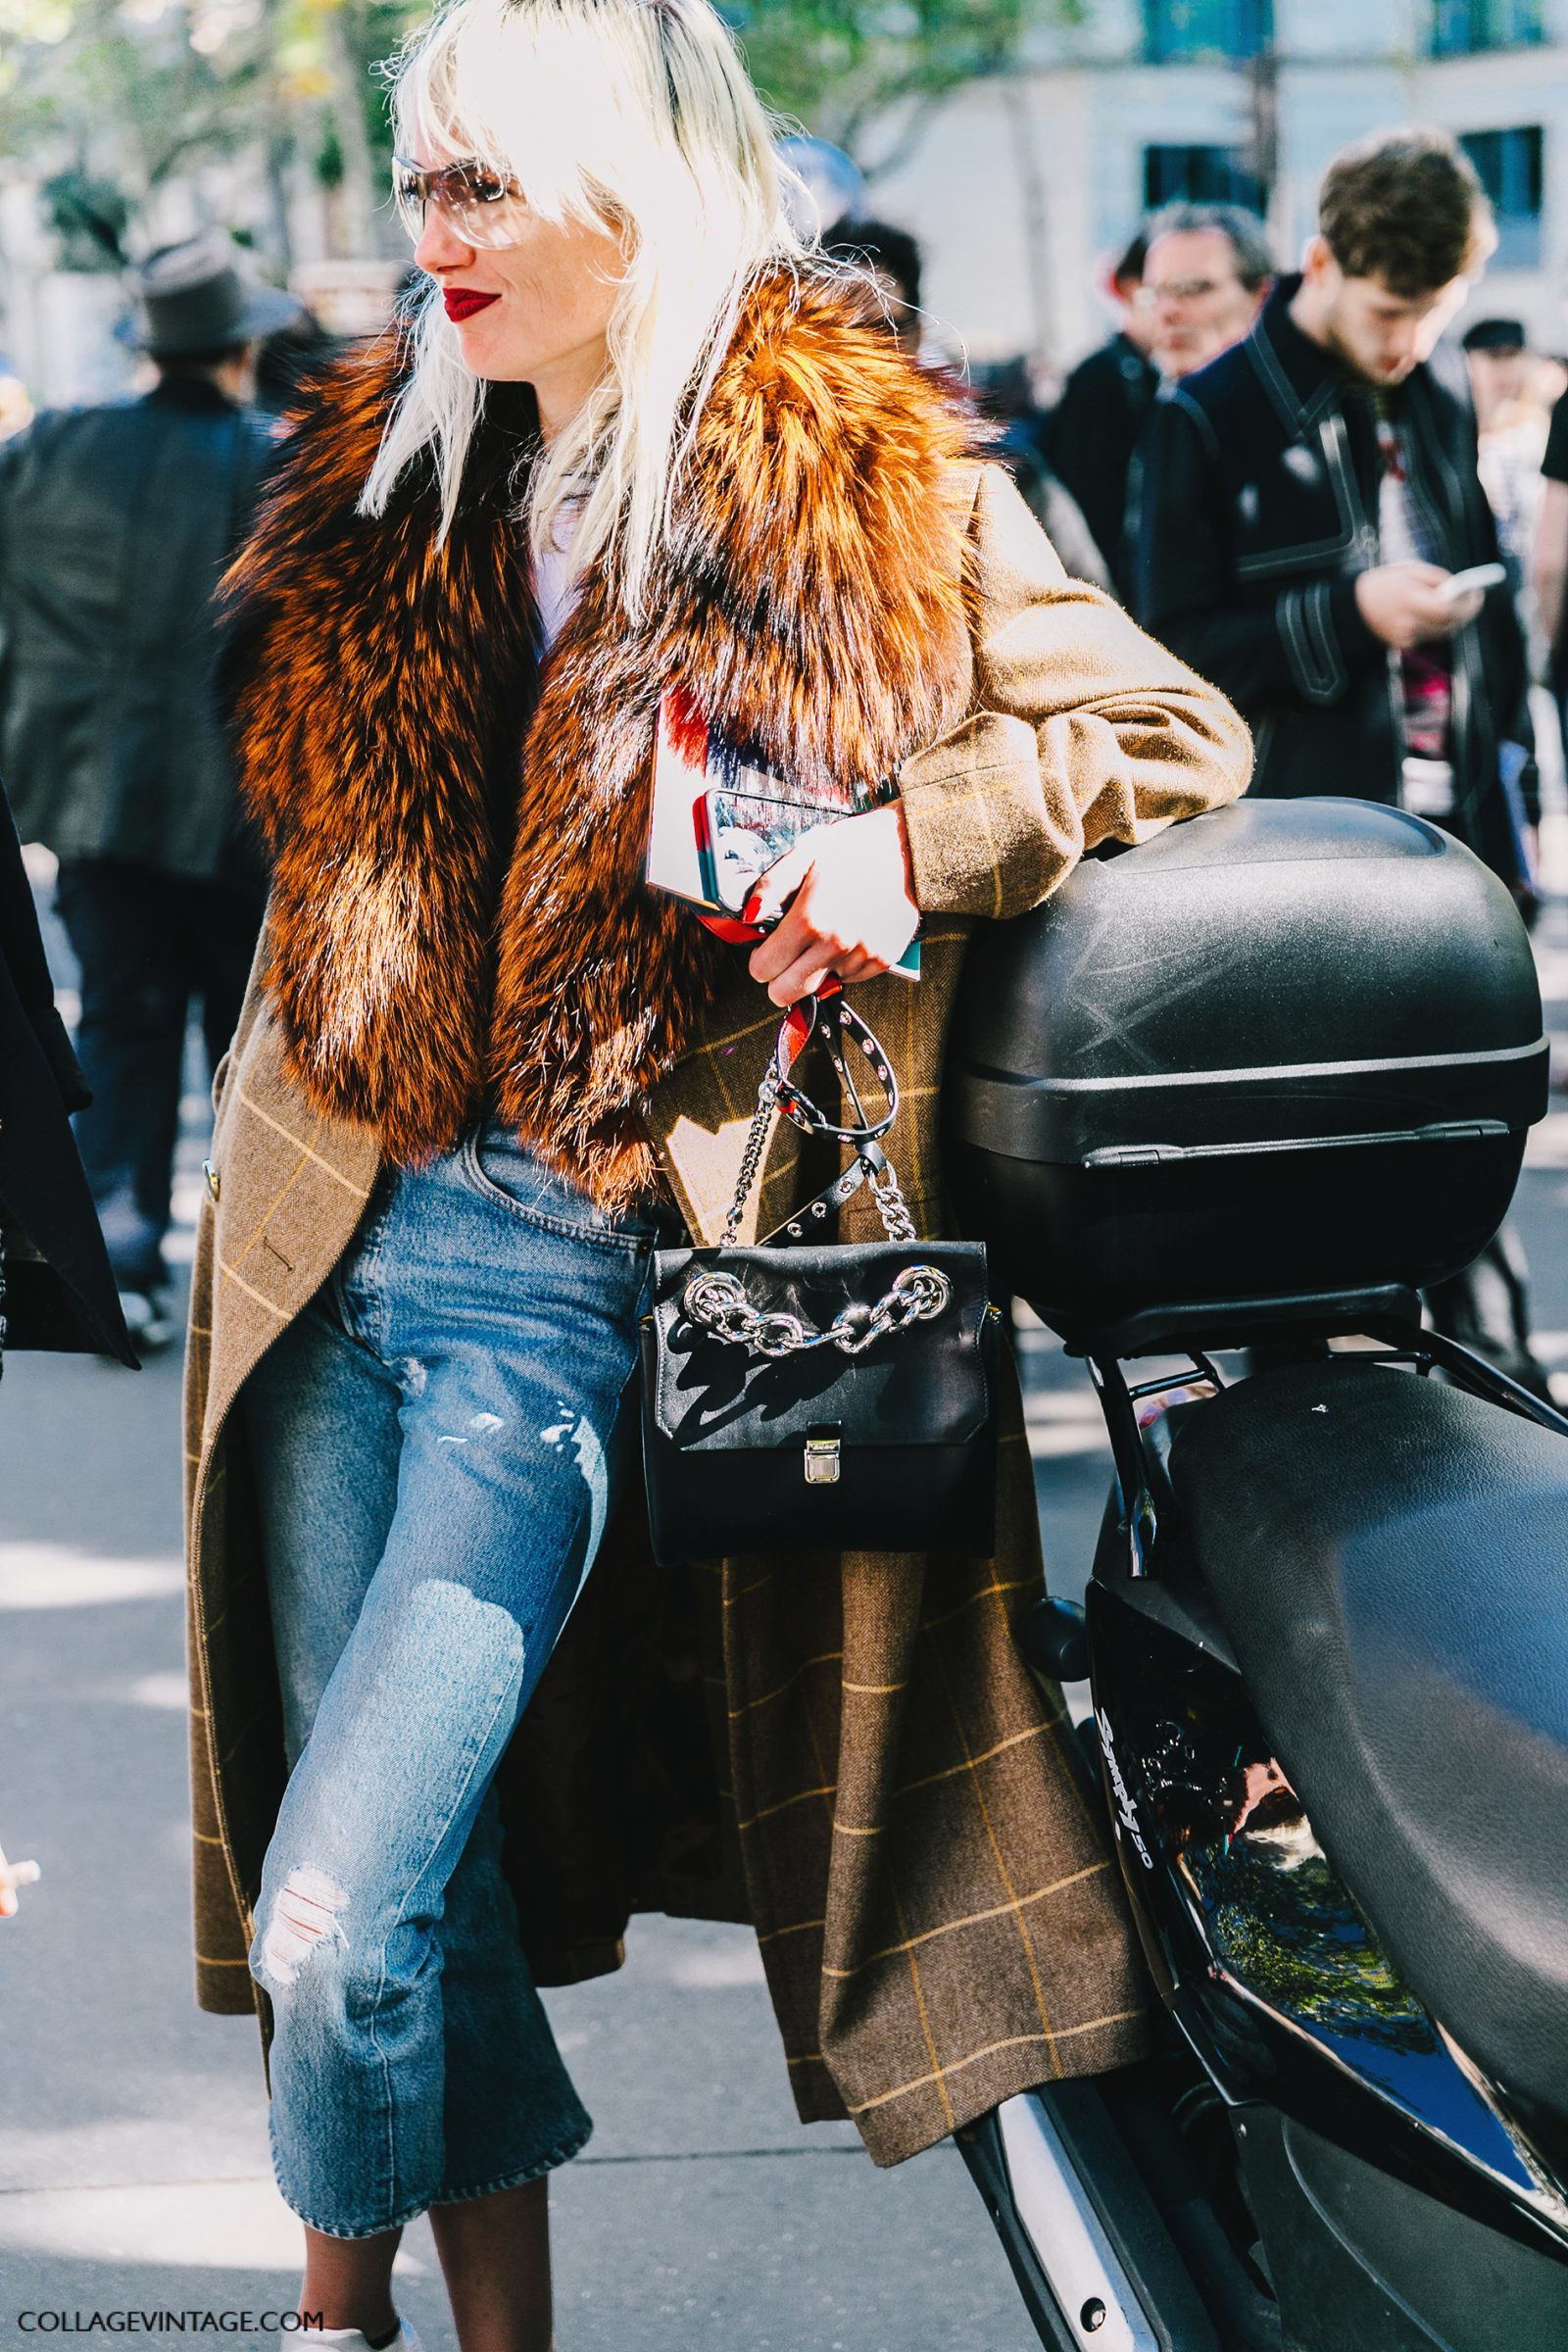 pfw-paris_fashion_week_ss17-street_style-outfit-collage_vintage-louis_vuitton-miu_miu-30